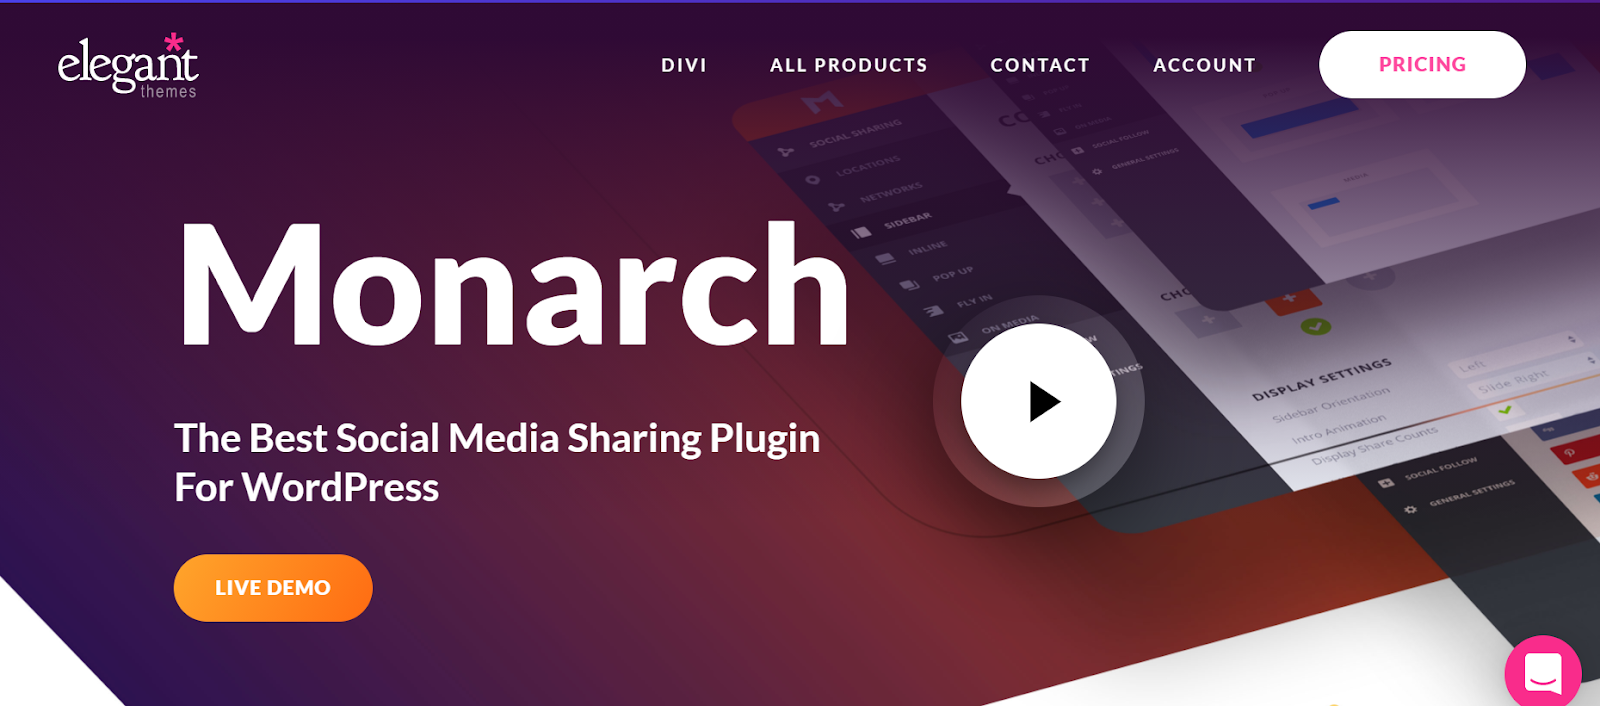 monarch WordPress social media plugin